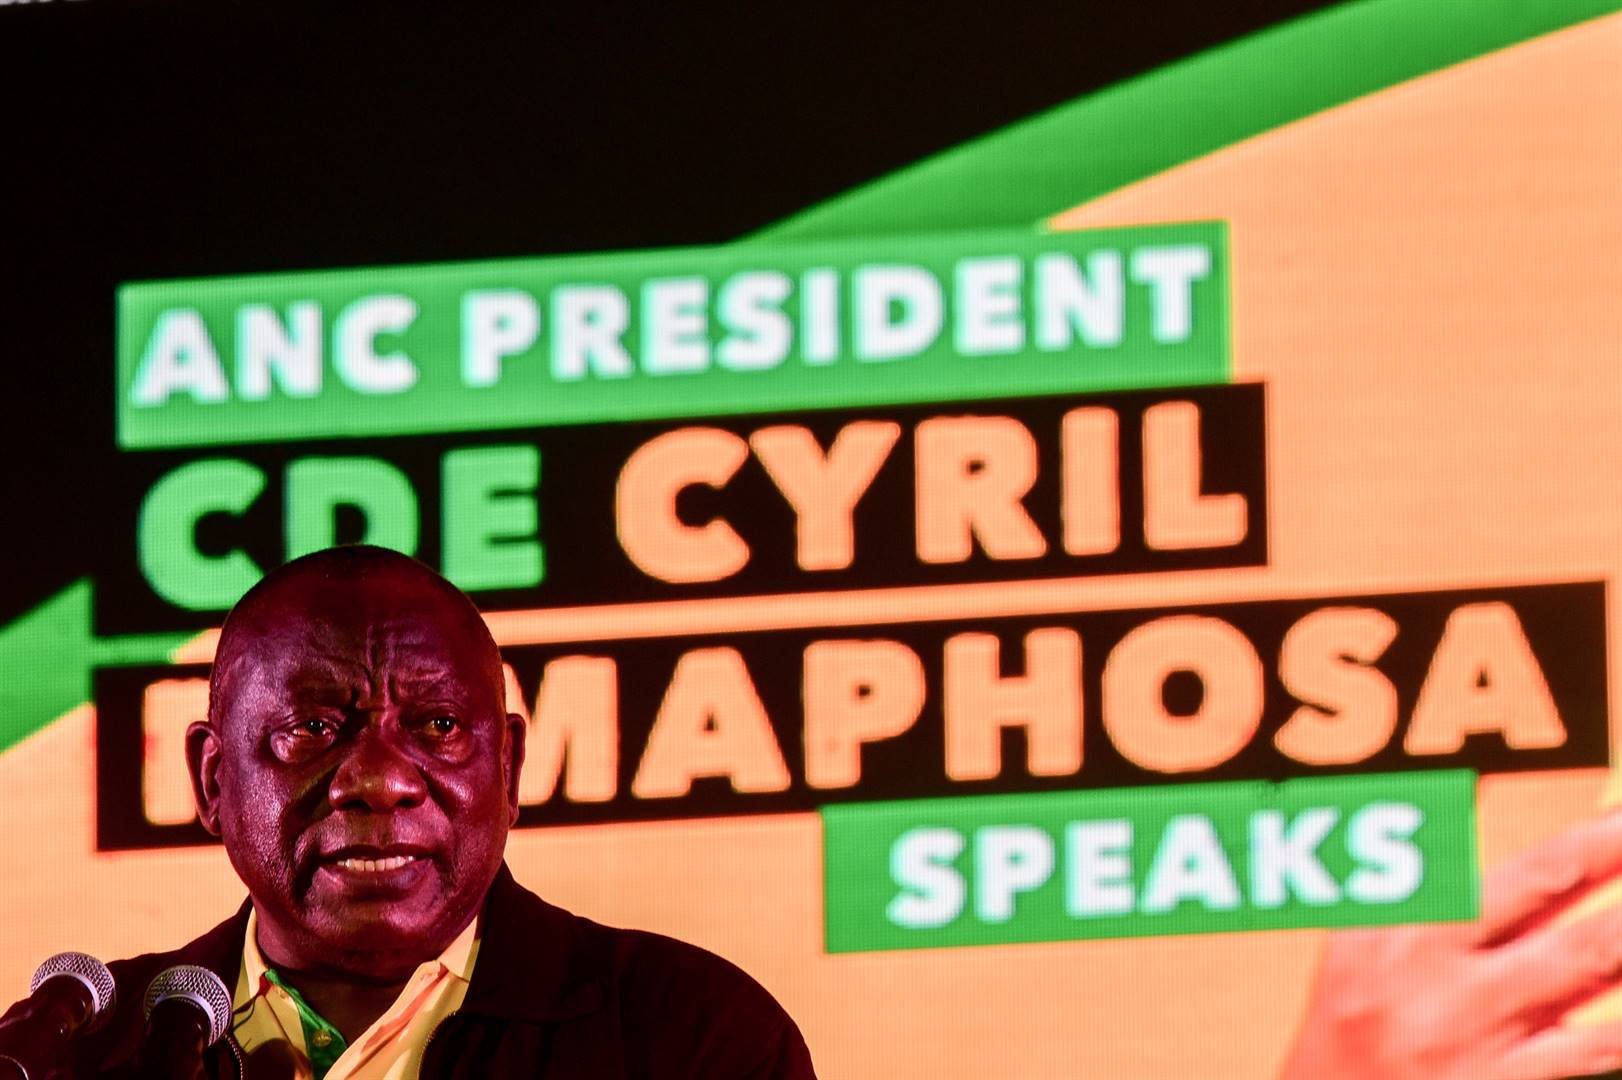 ANC president Cyril Ramaphosa appealed to voters to give the governing party another opportunity to rule in Tshwane. Photo: Rosetta Msimango